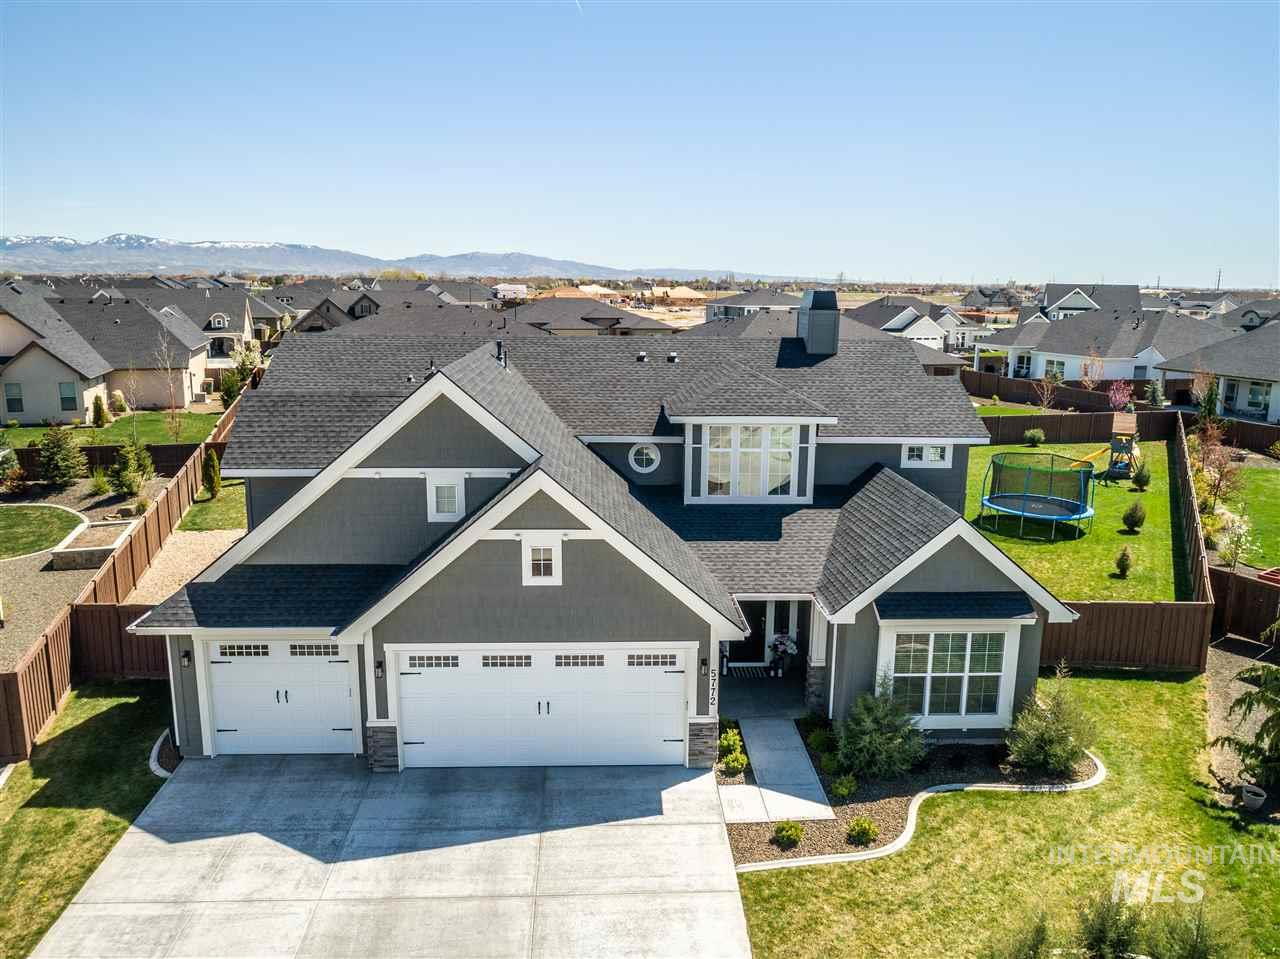 Best West facing lot in Bainbridge! Light & bright kitchen is a gourmet delight w/ pro series double fridge, SS appliances, walk in pantry, quartz countertops, island and custom cabinets. Custom built-ins and millwork throughout. Vaulted great rm features exquisite boxed beam ceiling & stylish modern fireplace. Elegant main level master w/ walk in tile shower. Wine cellar includes Kegco beer fridge. Main level office w/ barn door. Built in Traeger BBQ makes for excellent for outdoor entertaining. Lots more!